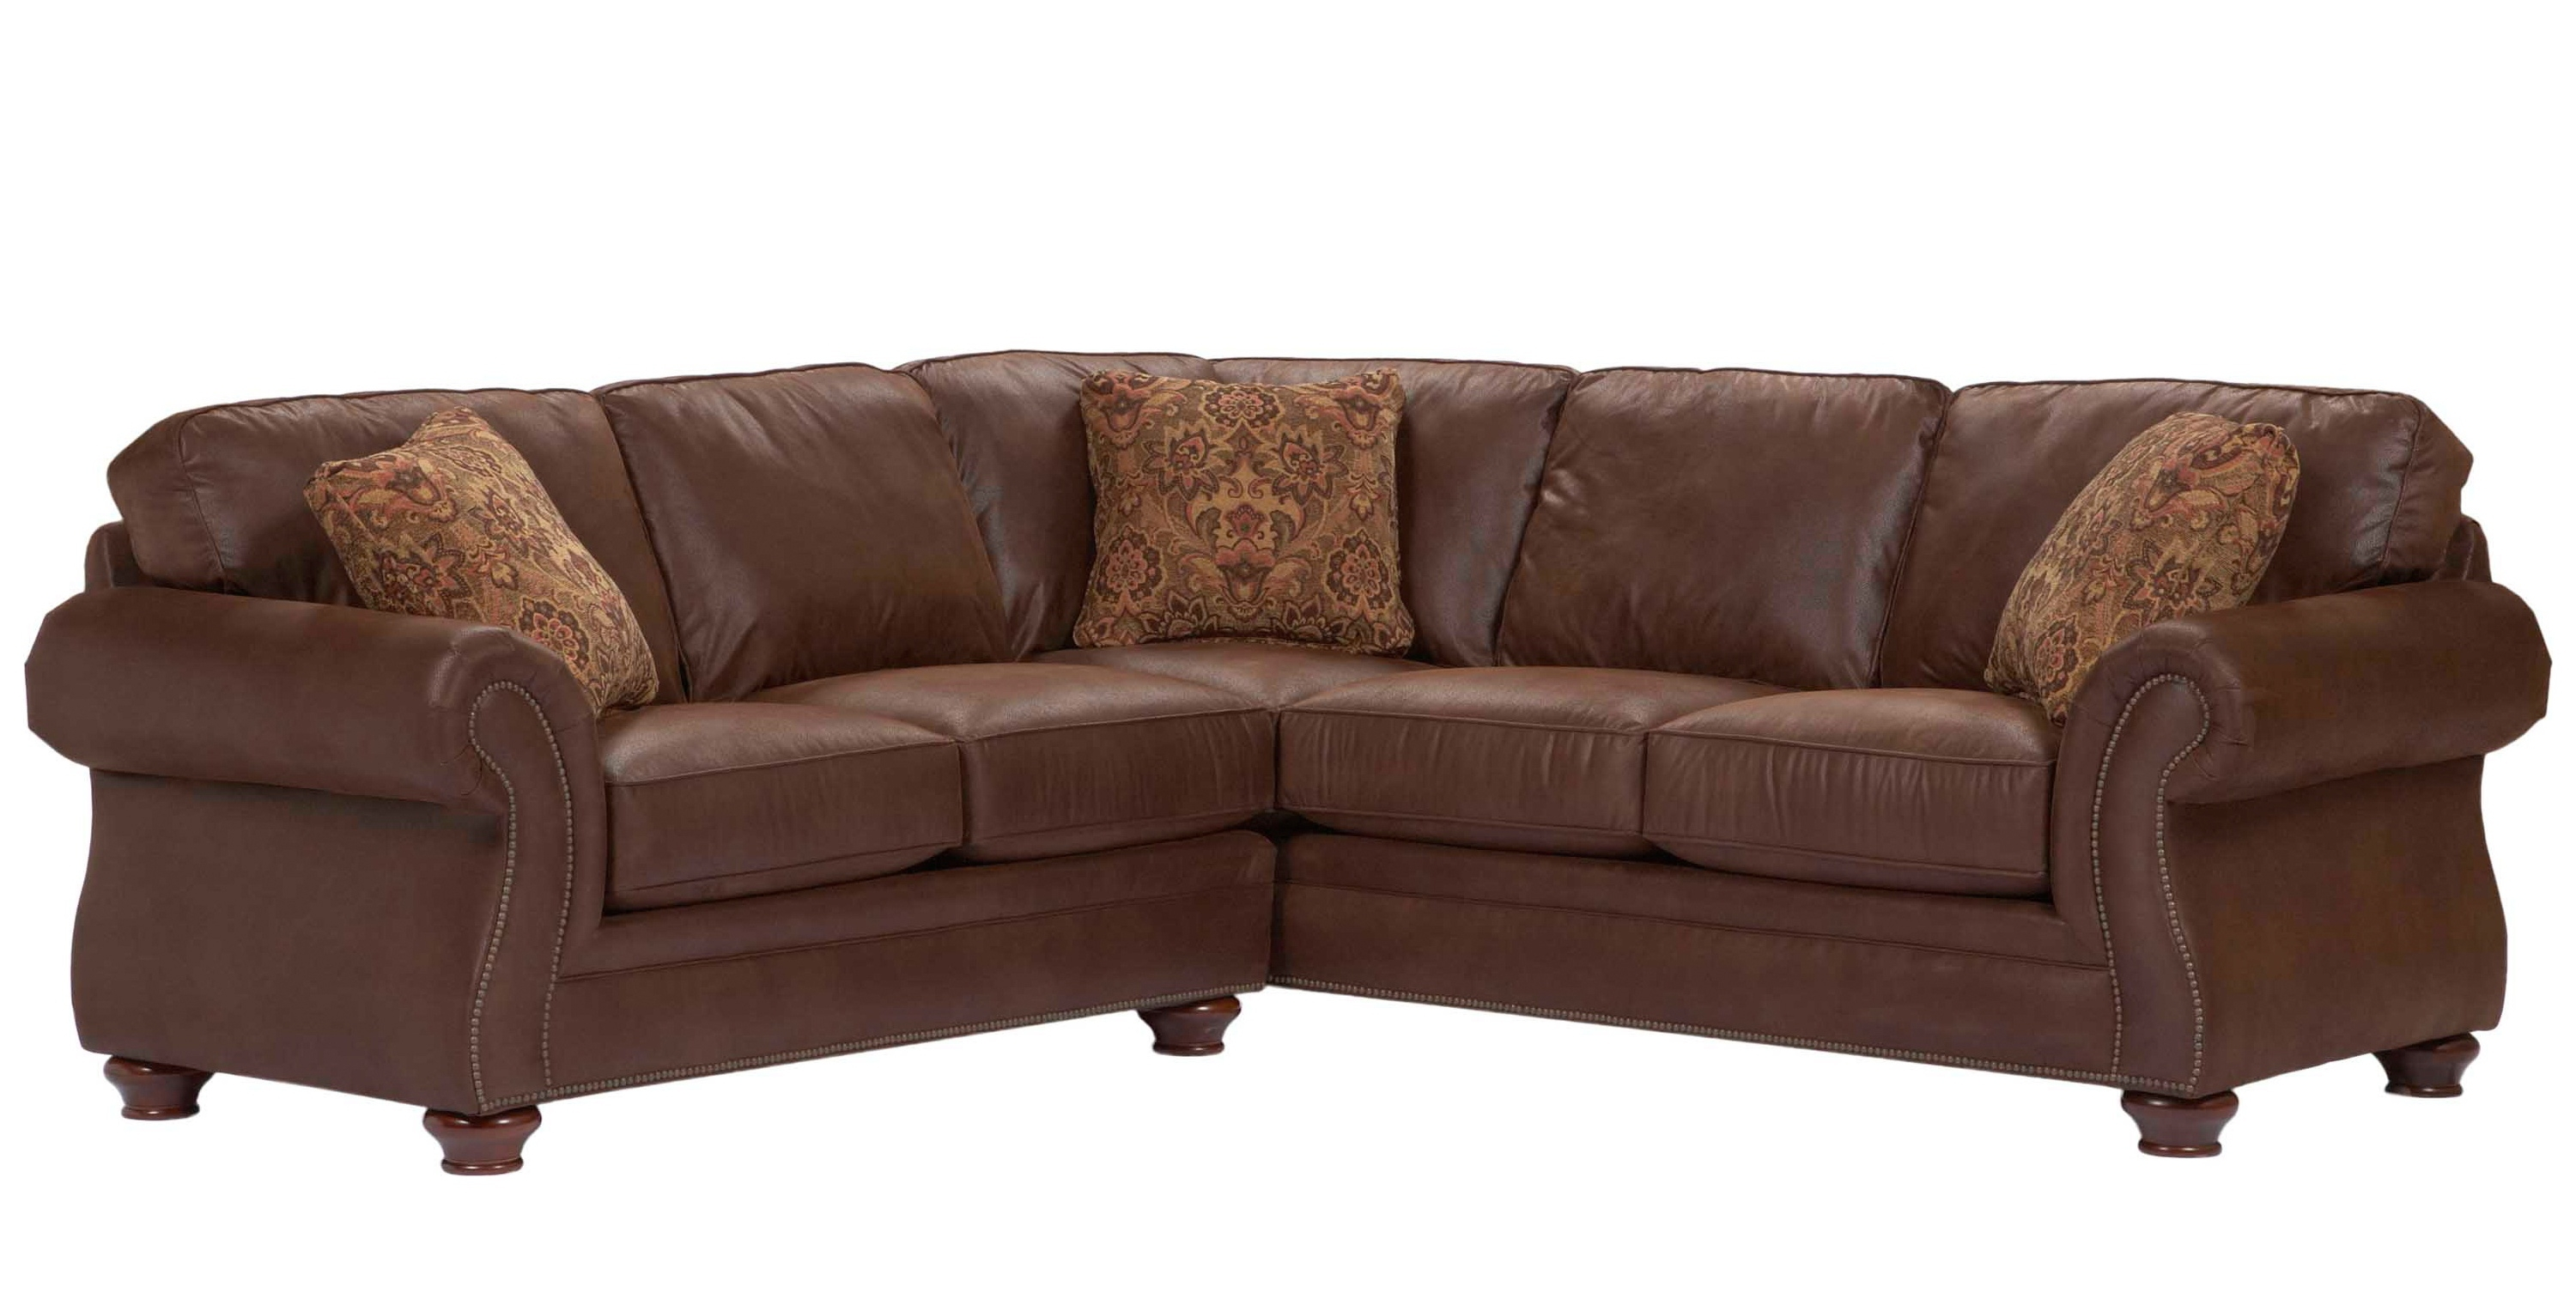 Well Known Broyhill Sectional Sofas Within Broyhill Laramie Sectional 5080 1q/5080 4q (View 5 of 20)